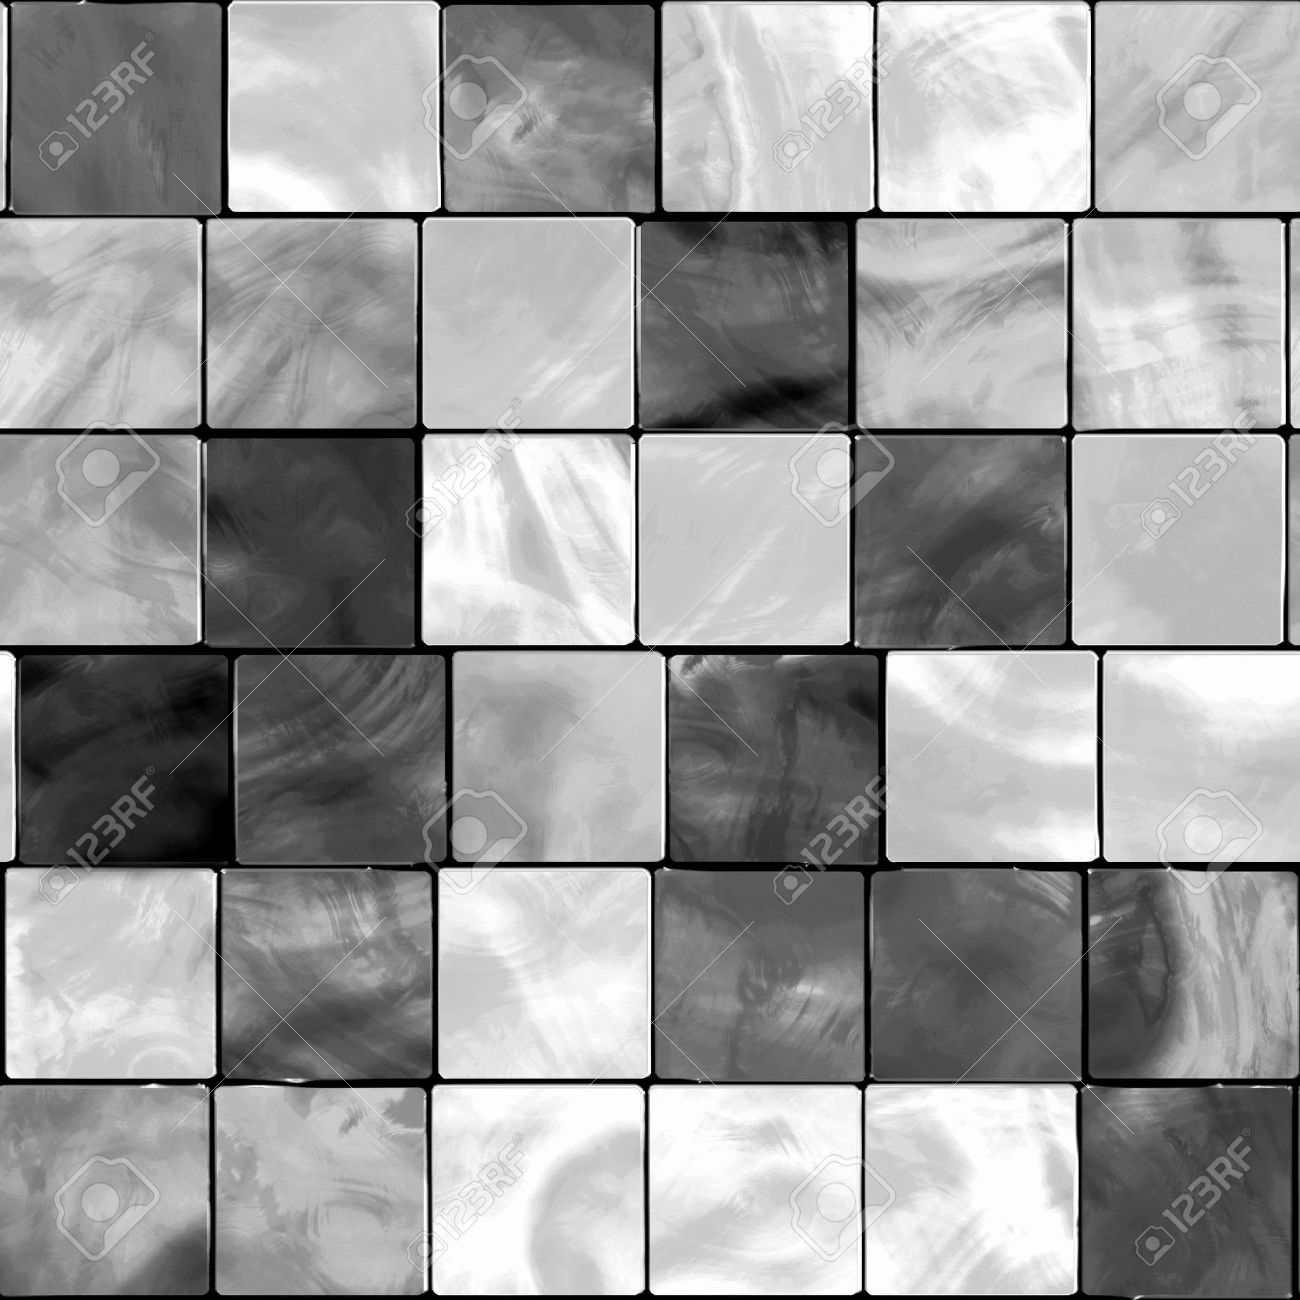 black and white tile floor texture. Seamless White And Gray Tone Tiles Stock Photo  5521649 Picture